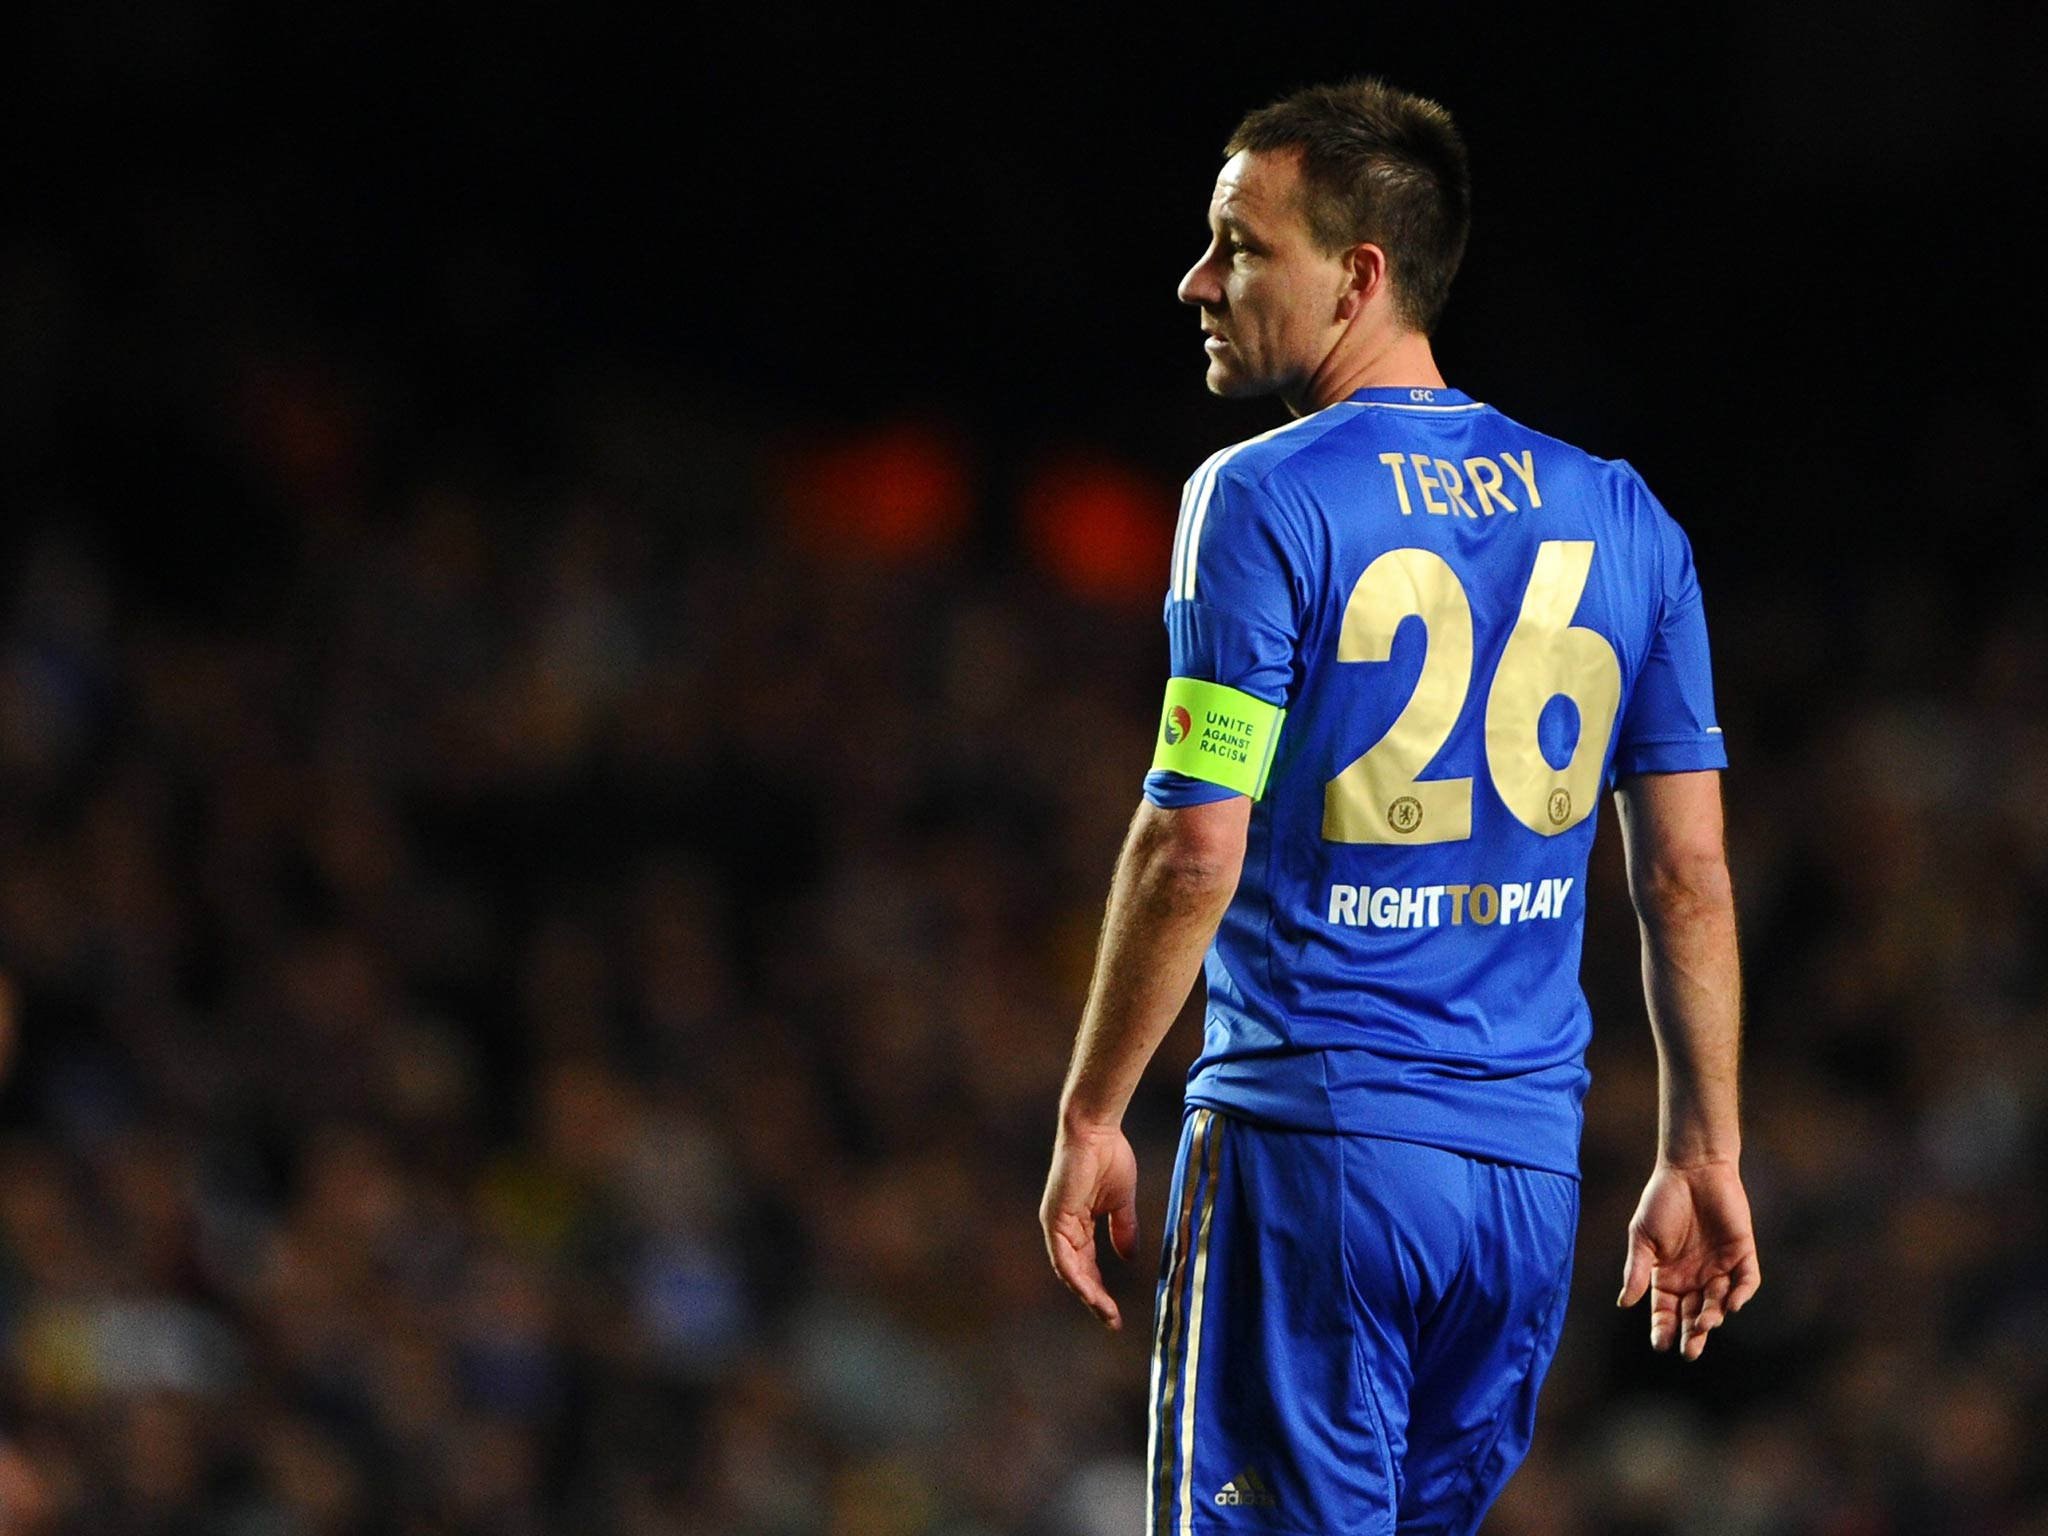 John terry expects chelsea contract talks to take place this john terry expects chelsea contract talks to take place this summer the independent voltagebd Image collections